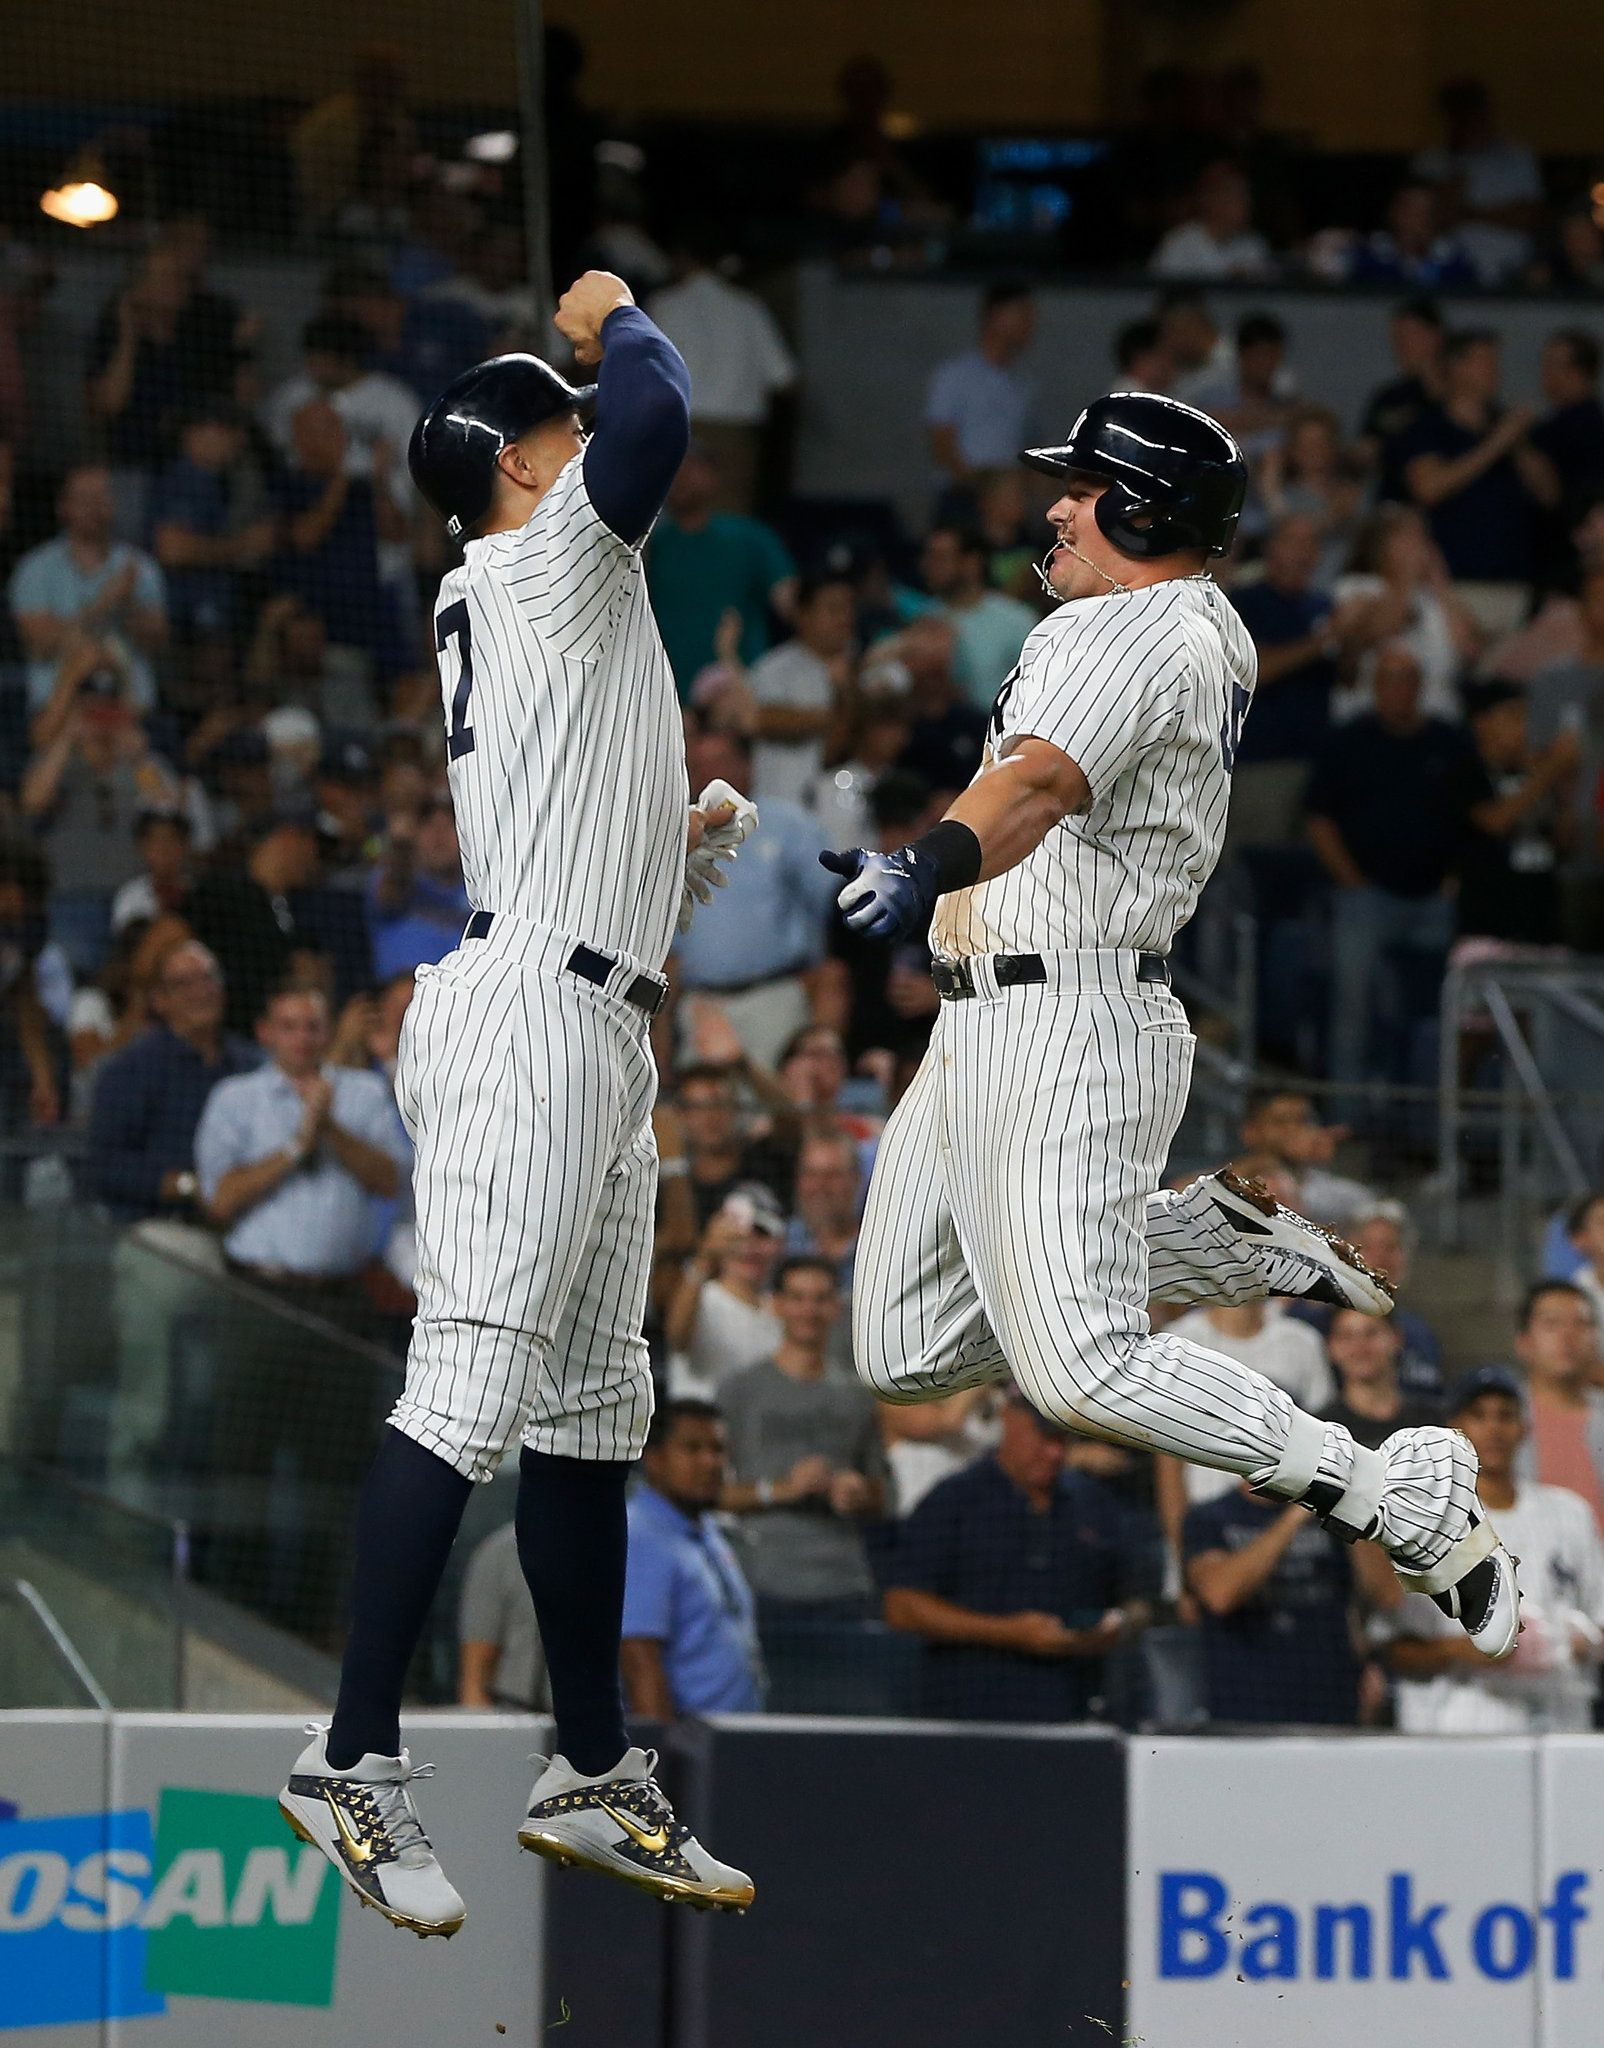 Luke Voit Always Knew He Could Hit Now Everyone Else Does Too New York Yankees Ny Yankees Yankees